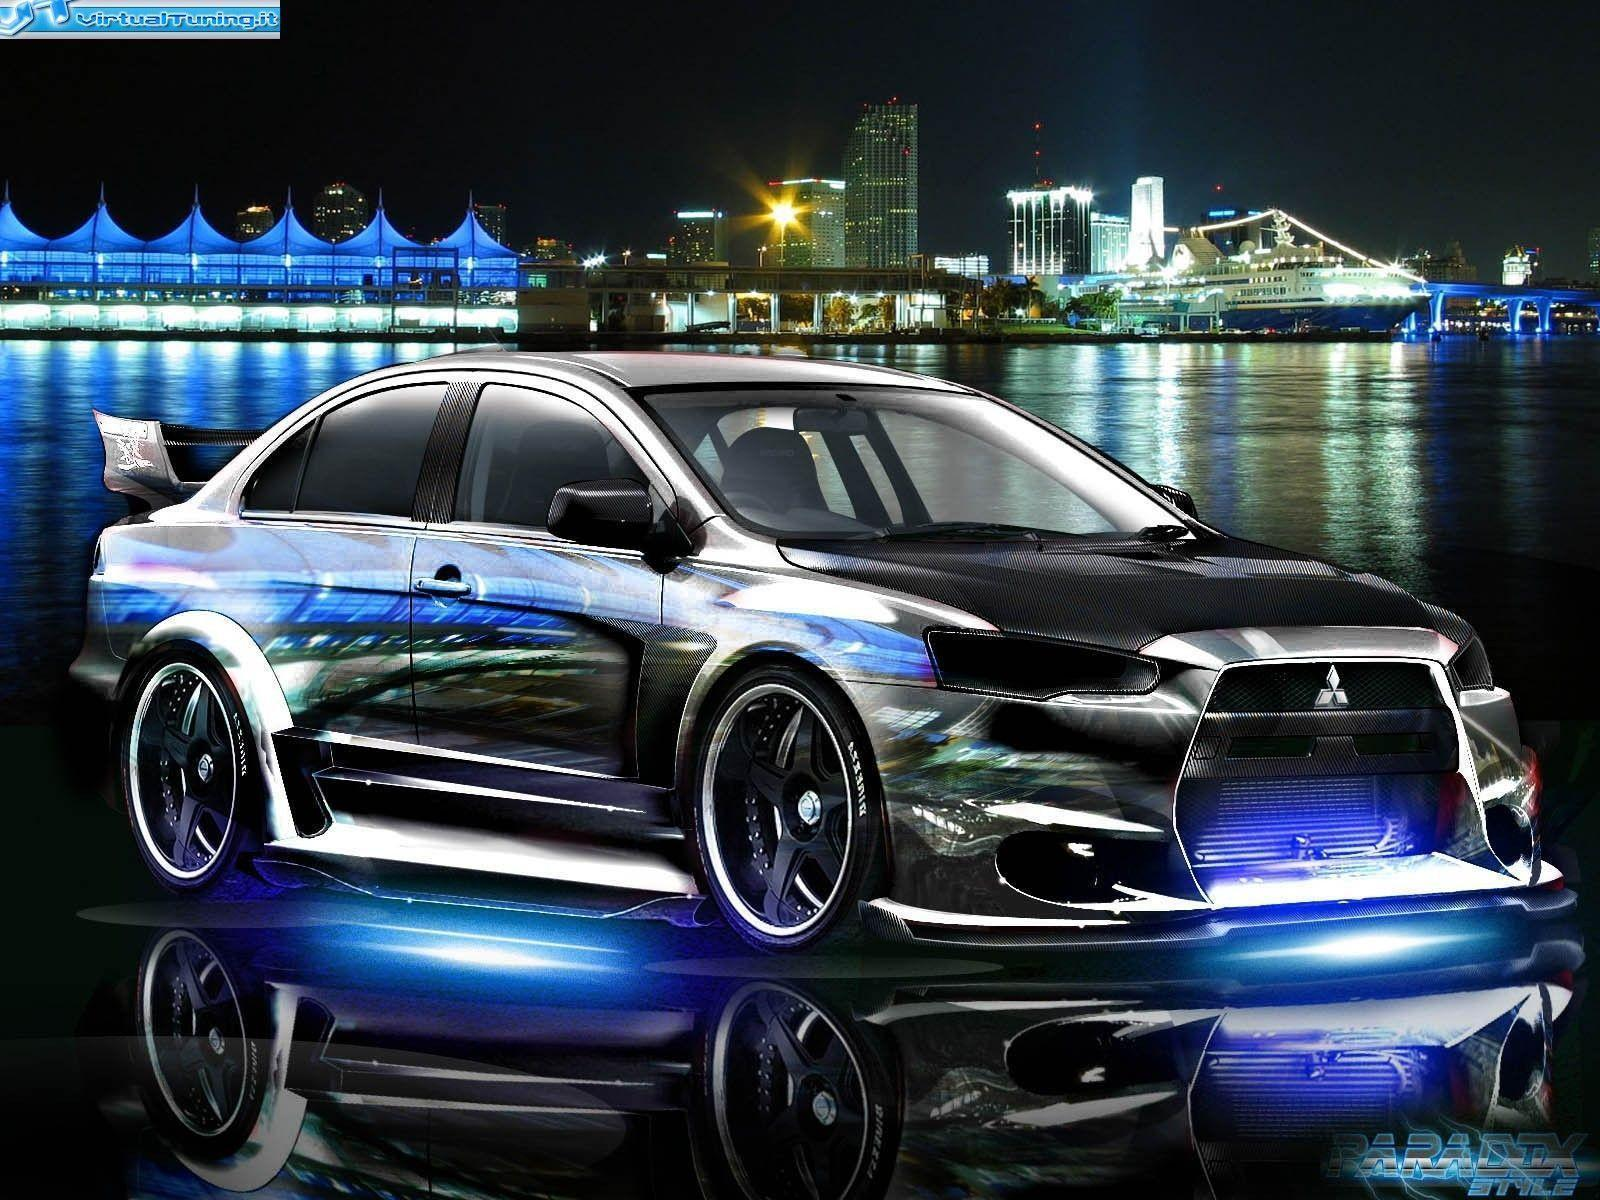 Mitsubishi Lancer Evolution Wallpapers For Iphon